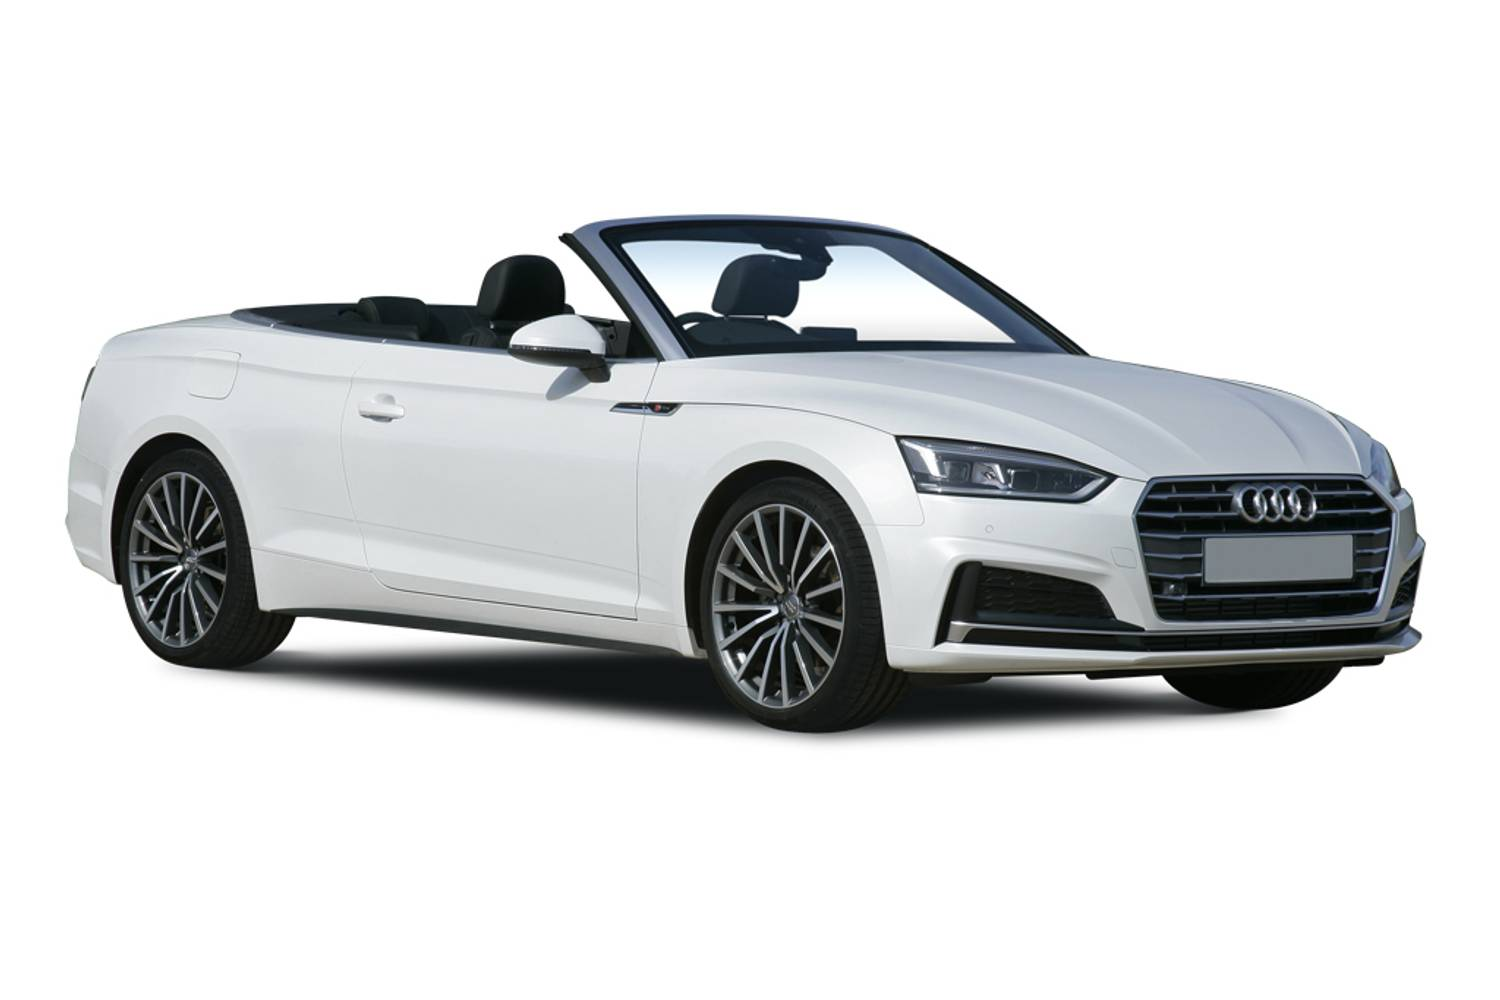 new audi a5 cabriolet 2 0 tfsi quattro s line 2 door s tronic 2017 for sale. Black Bedroom Furniture Sets. Home Design Ideas